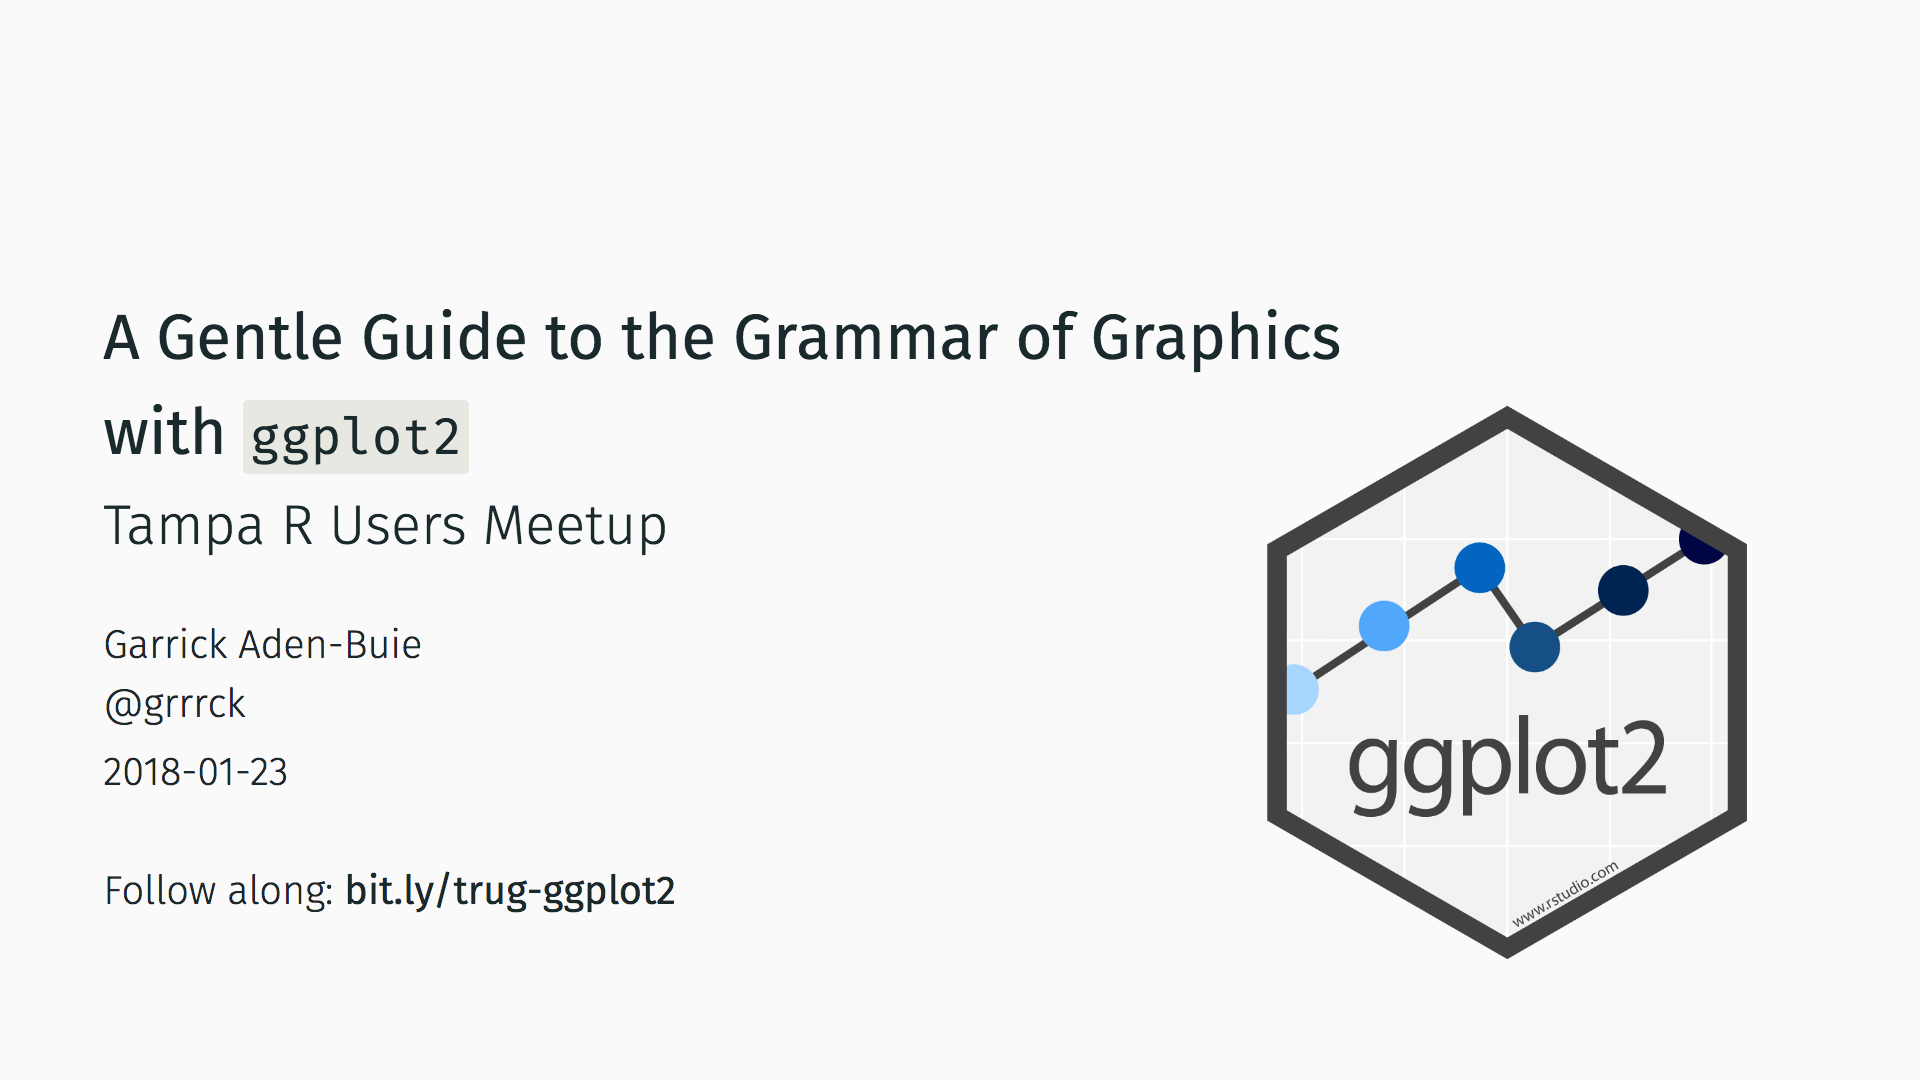 A Gentle Guide to the Grammar of Graphics with ggplot2